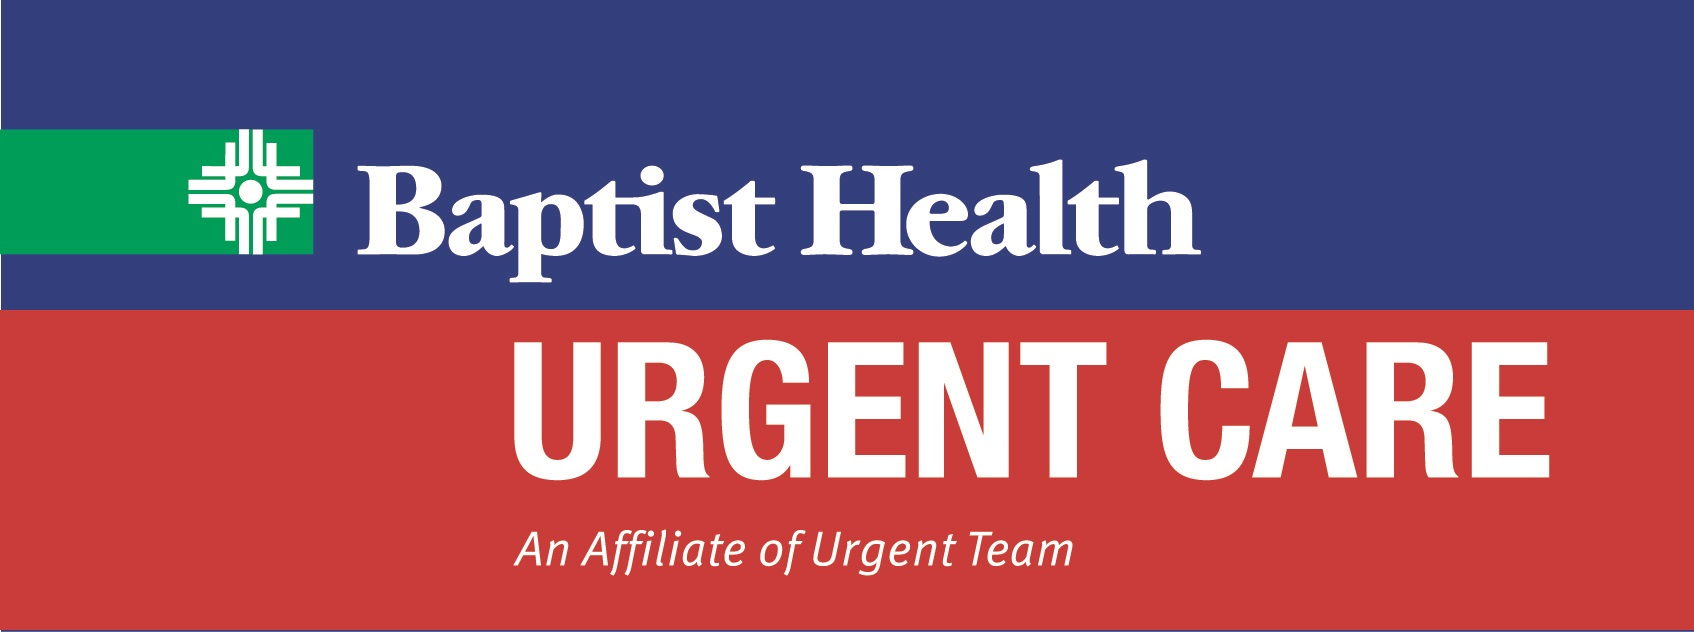 Baptist Health Urgent Care - Little Rock Logo